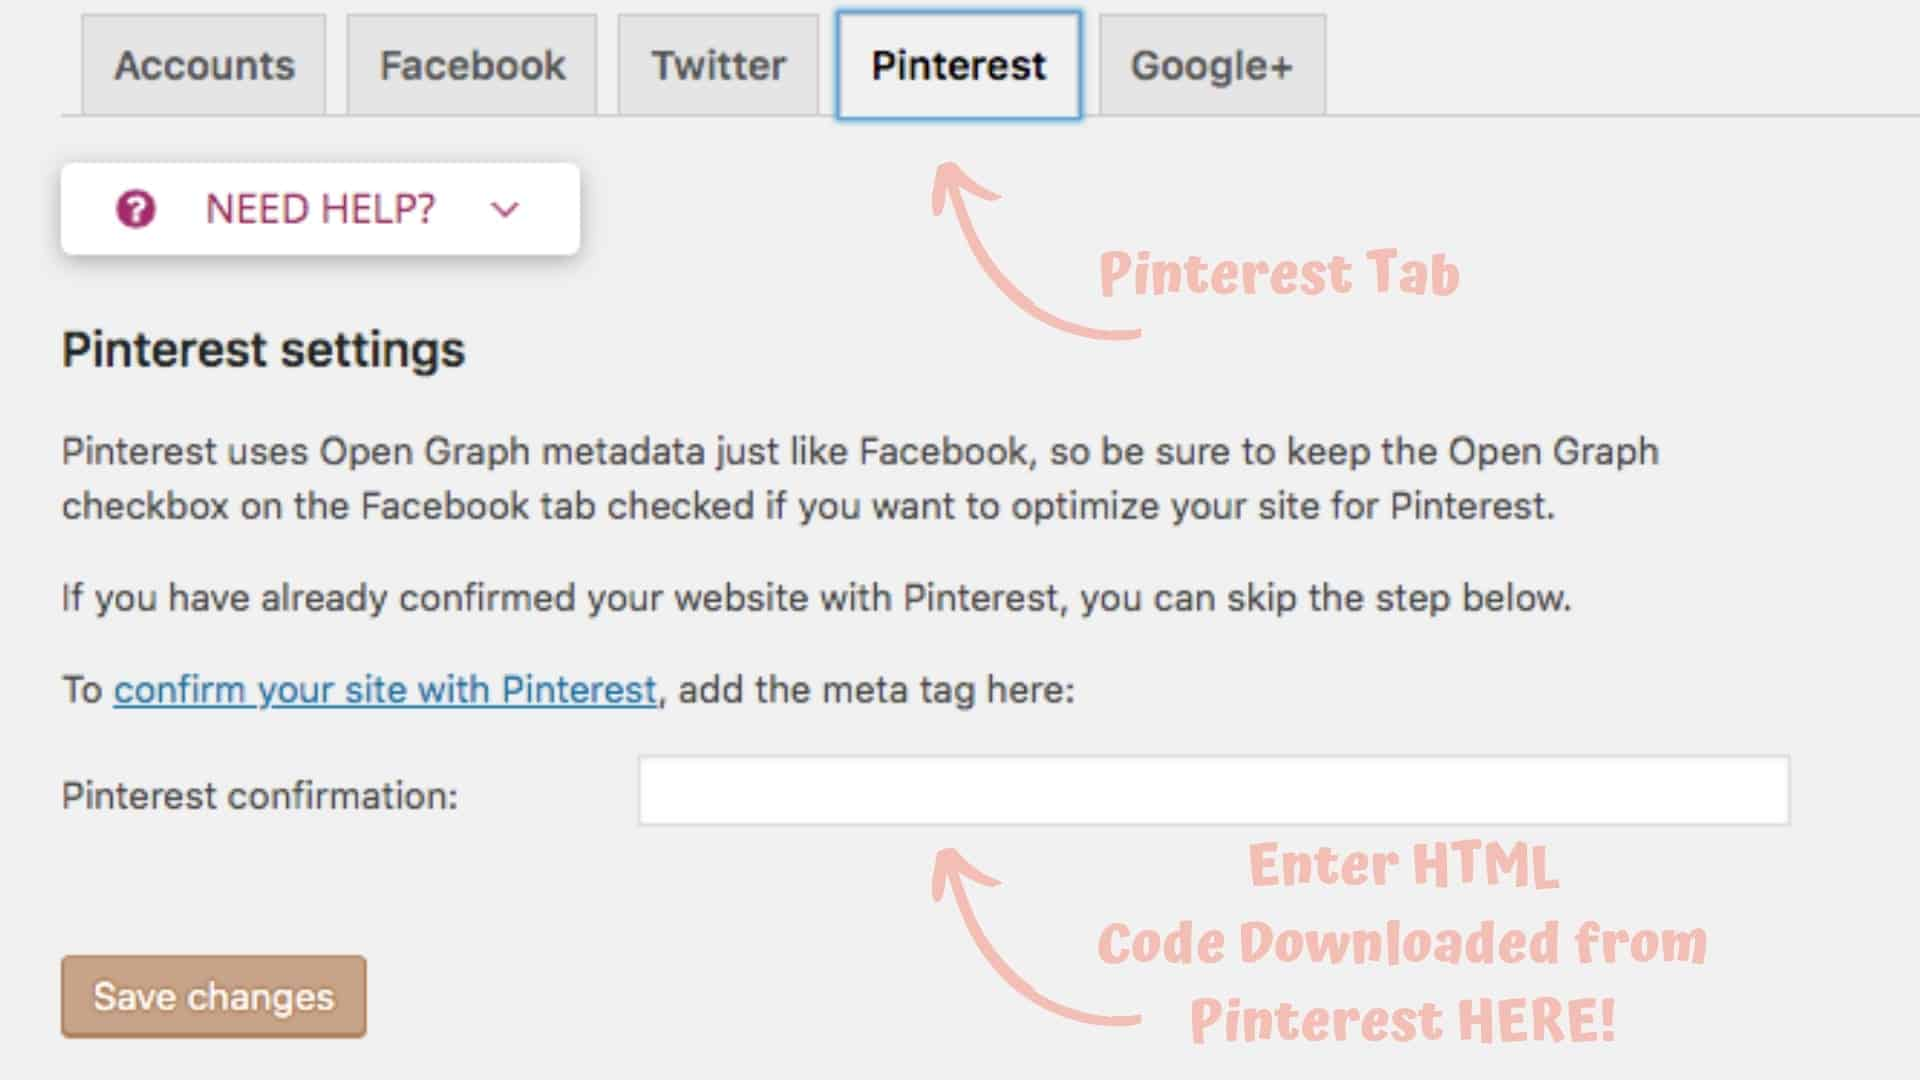 Screenshot of Yoast plugin showing the Pinterest tab and where to enter HTML code.